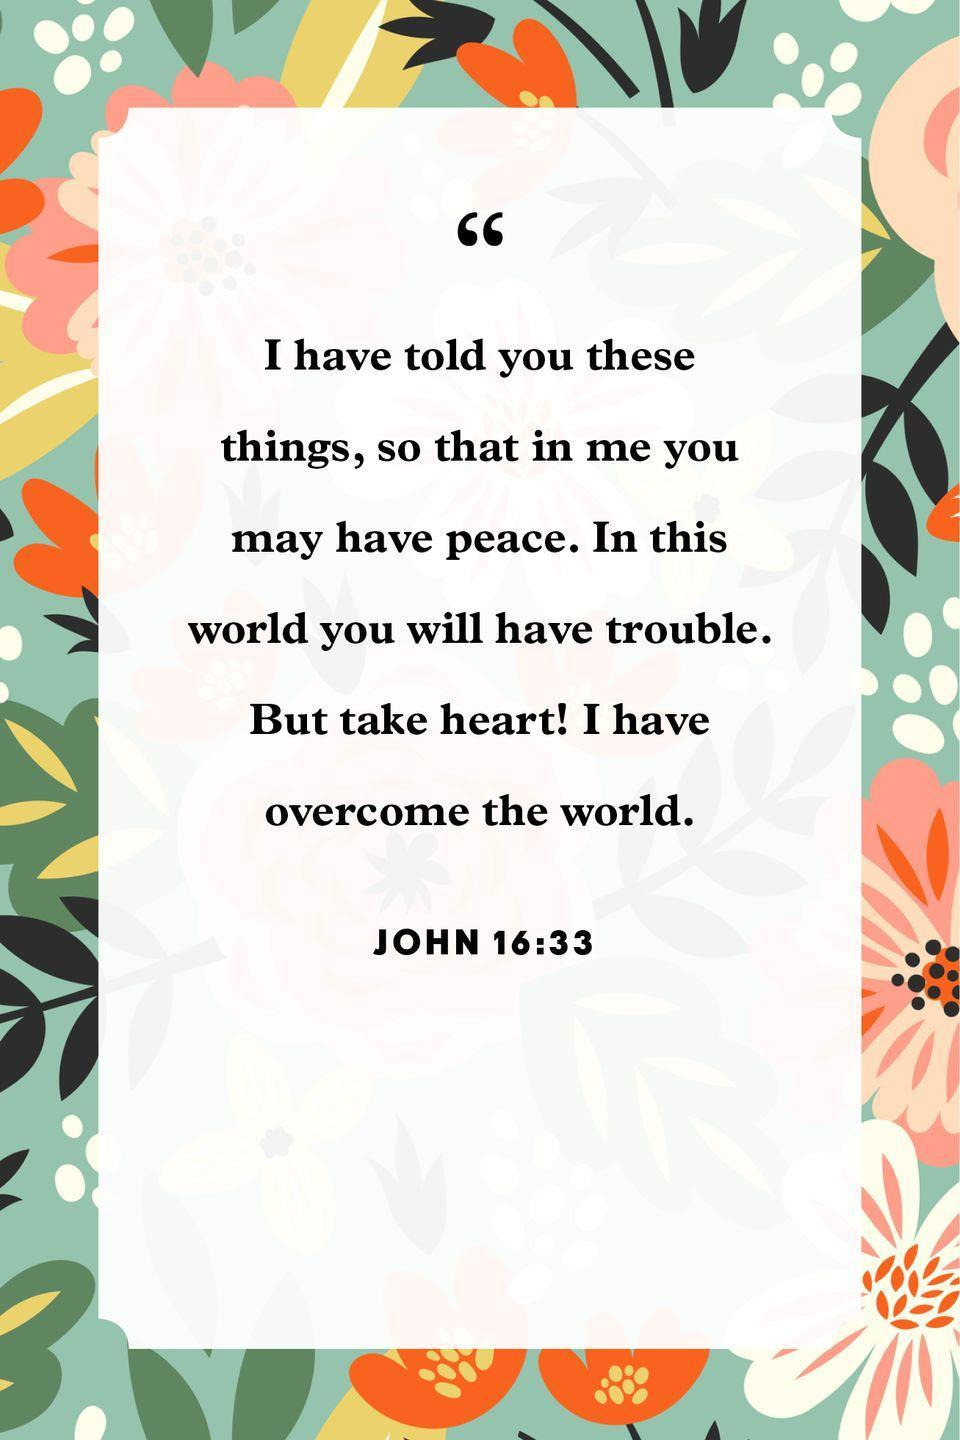 "<p>""I have told you these things, so that in me you may have peace. In this world you will have trouble. But take heart! I have overcome the world.""</p>"